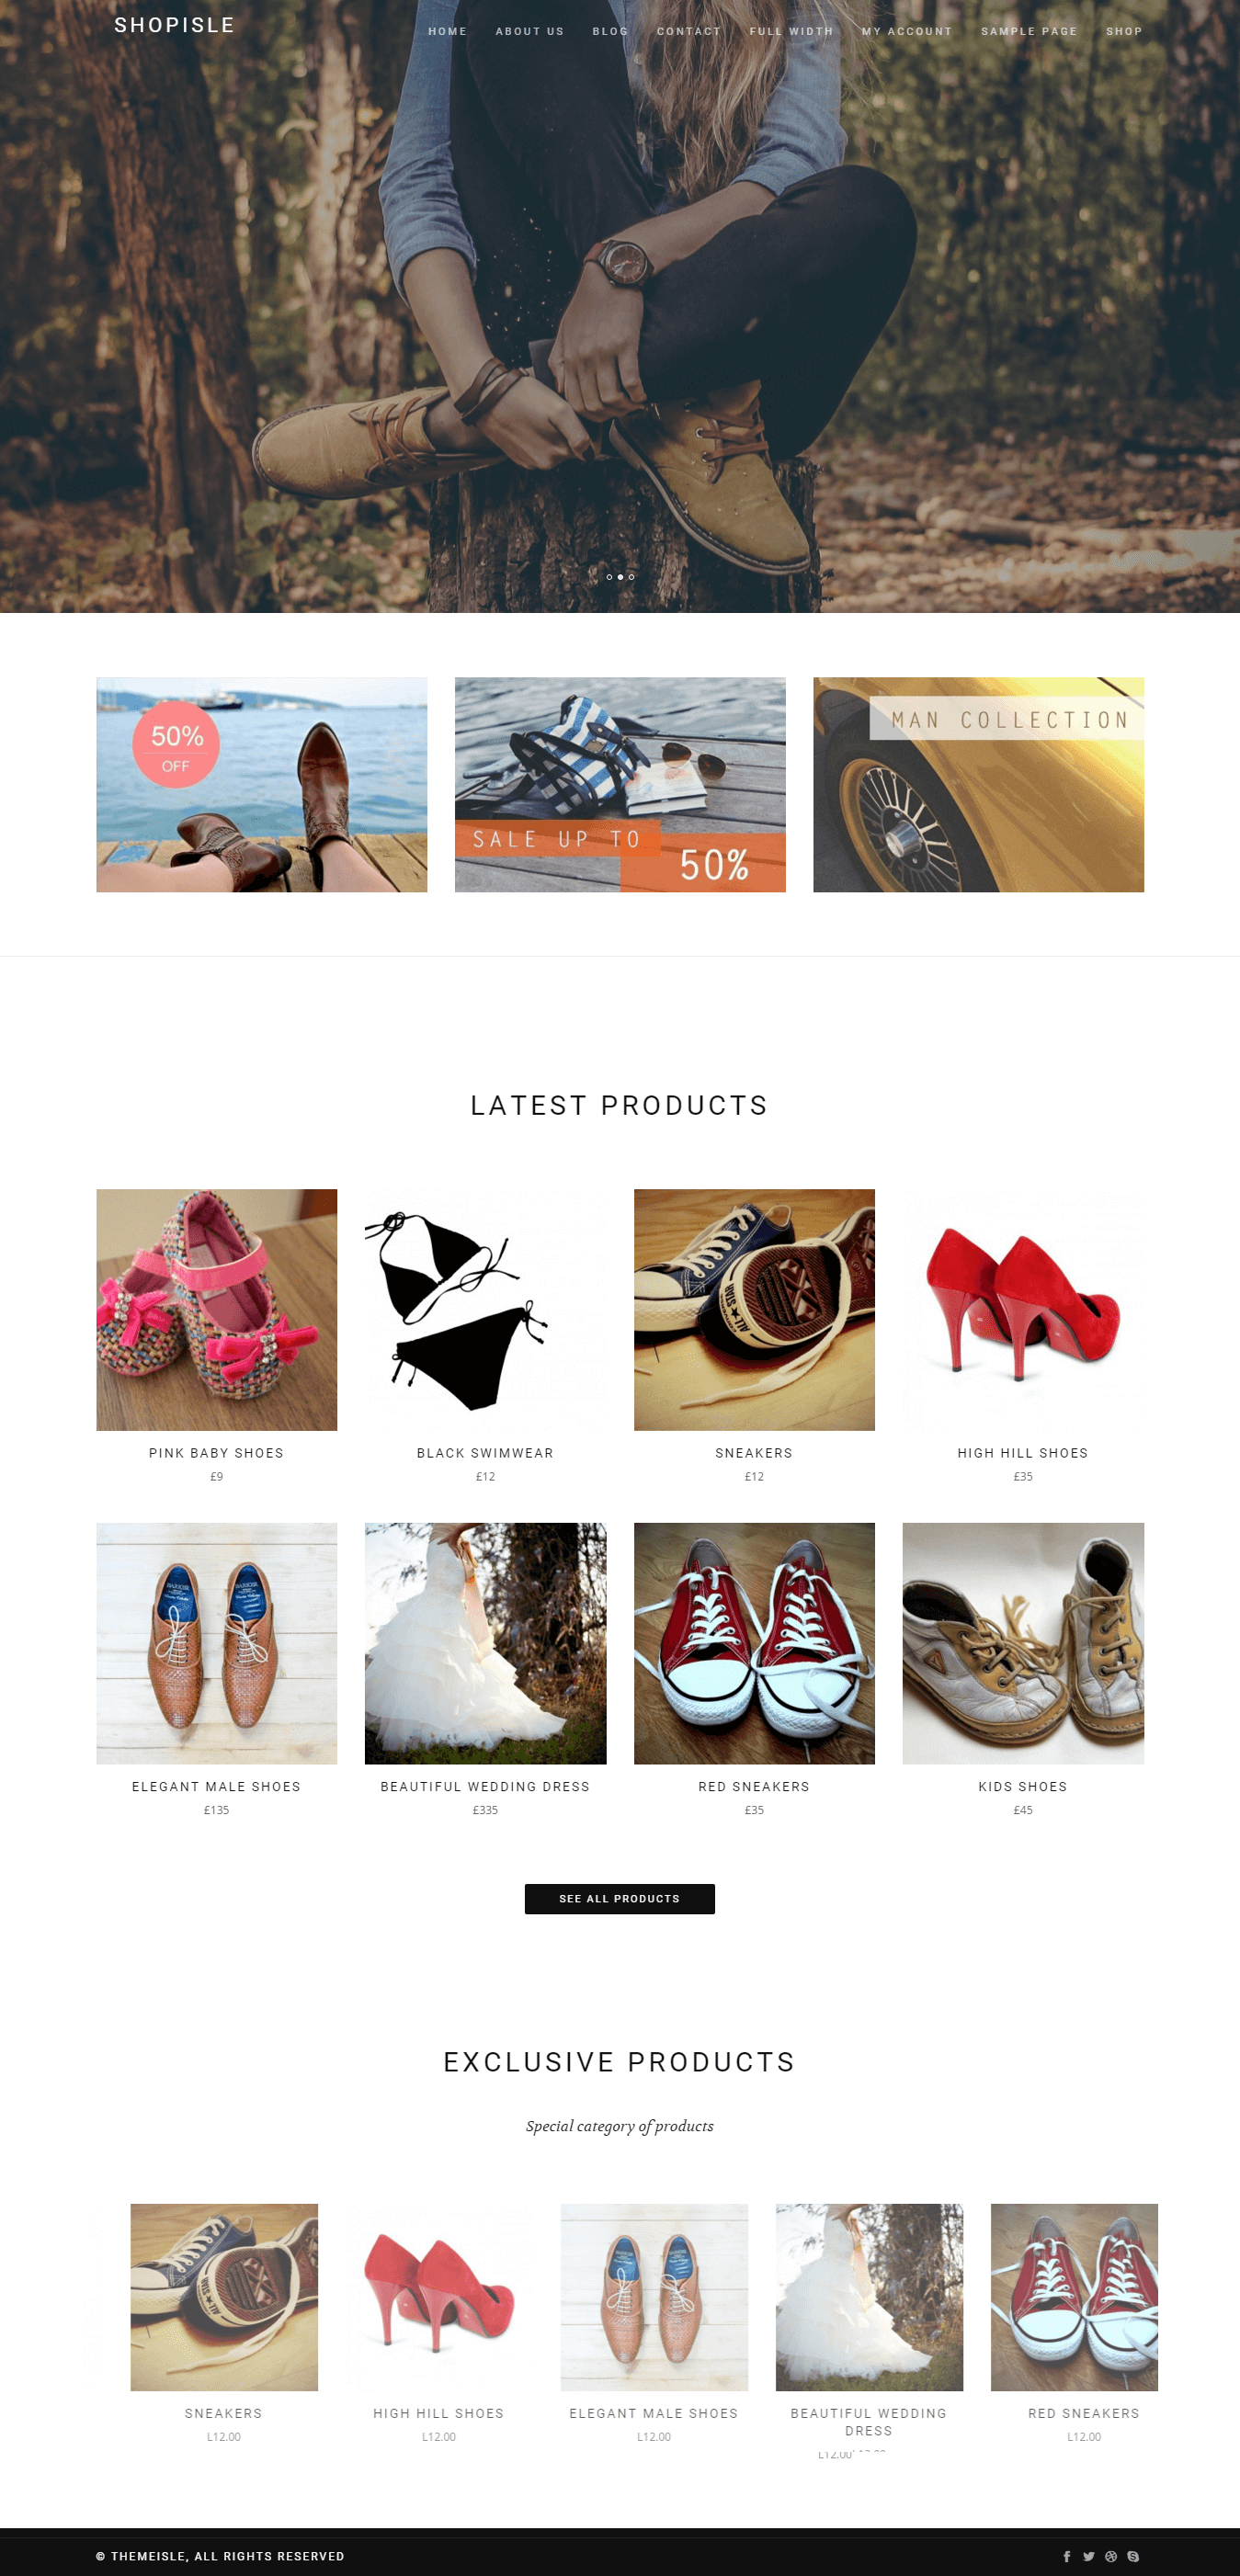 Shopisle eCommerce WordPress theme